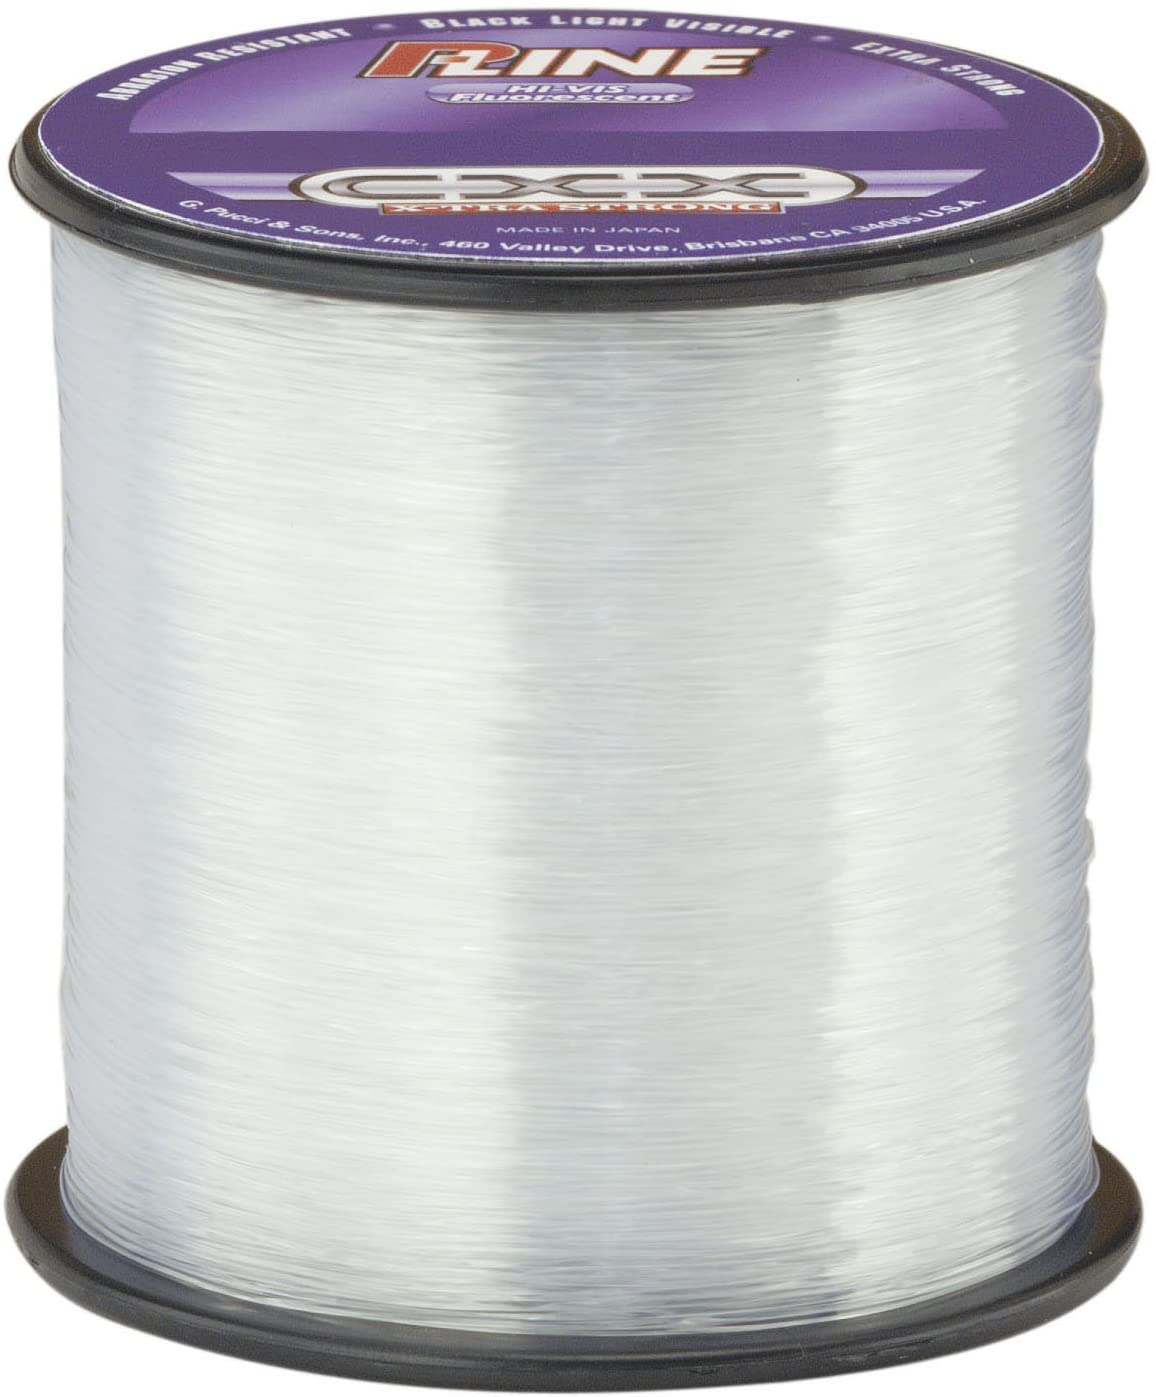 P-Line CXX-Xtra Strong High Visibility Clear Fluorescent Fishing Line 1/4# Spool